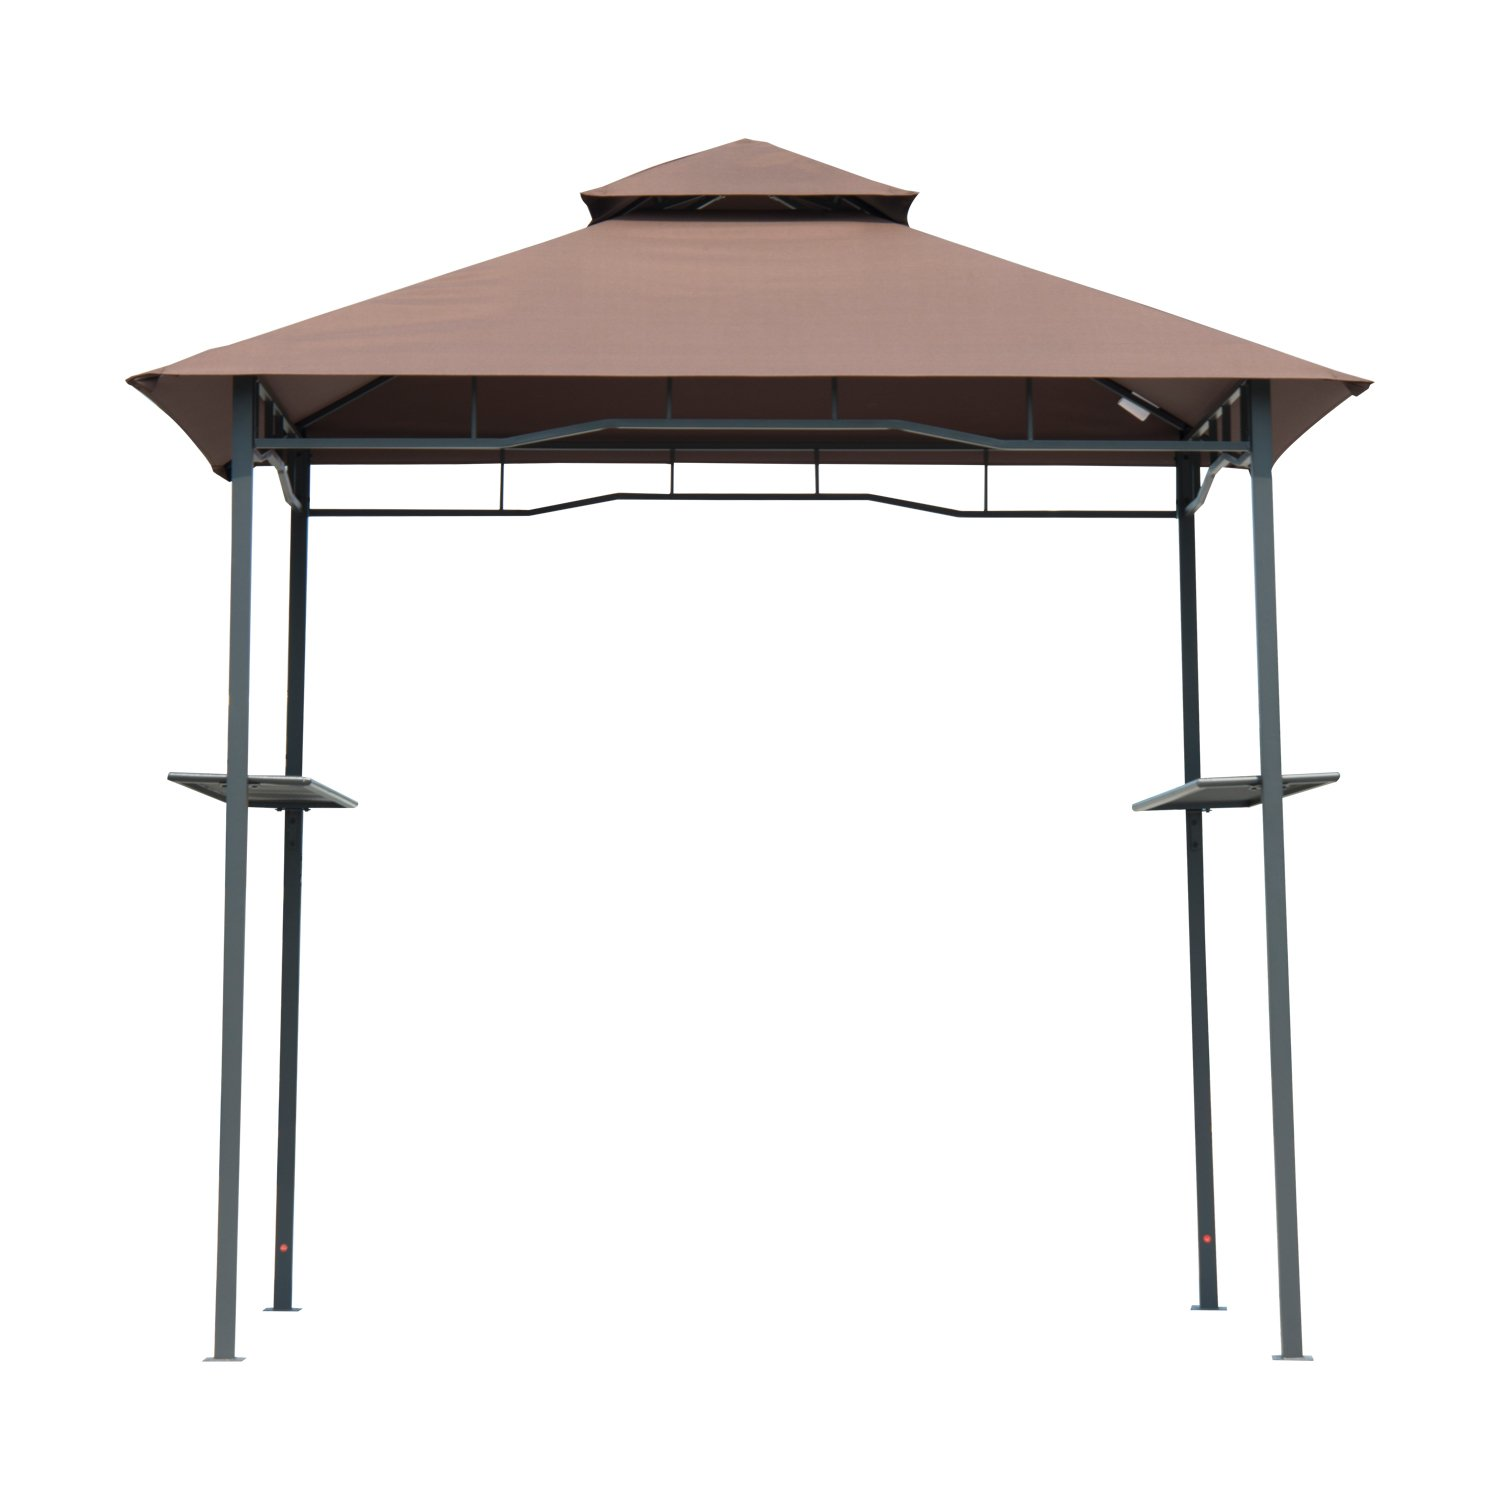 Amazon.com  Outsunny Outdoor 2-Tier BBQ Grill Canopy Tent 8-Feet  Sports Fan Canopies  Garden u0026 Outdoor  sc 1 st  Amazon.com & Amazon.com : Outsunny Outdoor 2-Tier BBQ Grill Canopy Tent 8-Feet ...